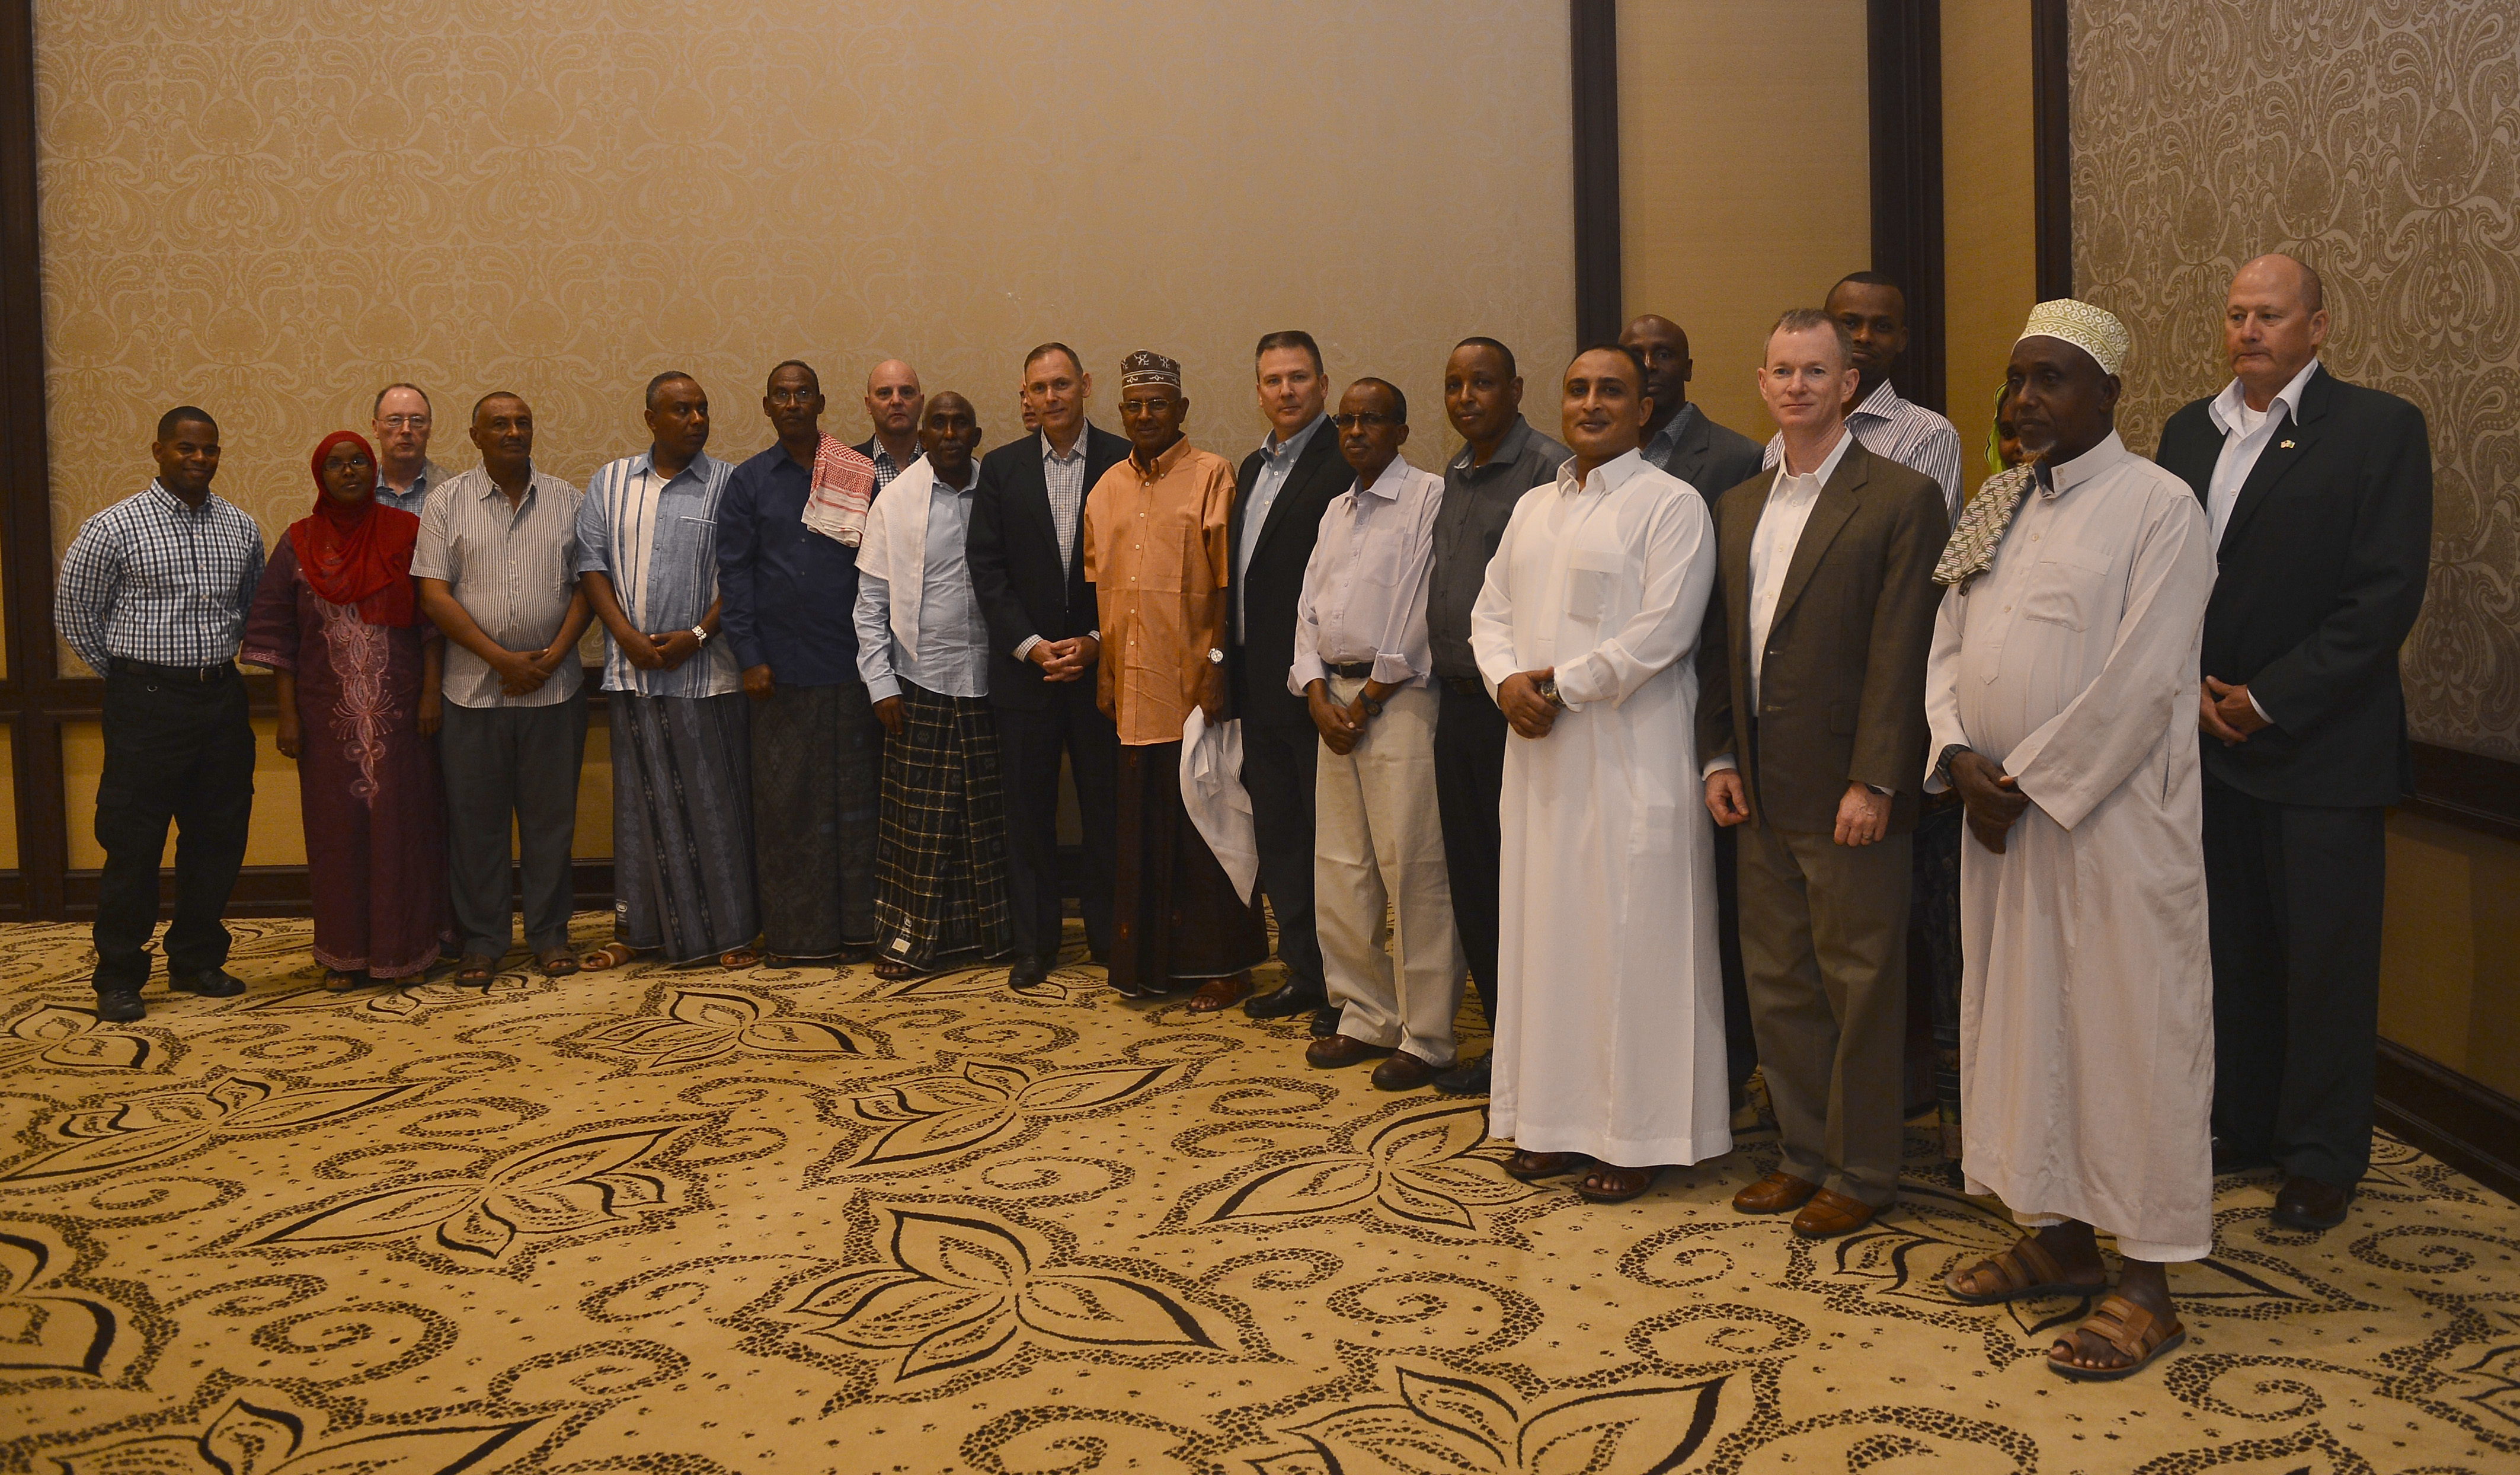 Combined Joint Task Force-Horn of Africa's Iftar dinner attendees pose for a group photo at the Kempinski Hotel, Djibouti, June 29, 2015. CJTF-HOA, Camp Lemonnier, and U.S. Embassy leaders gathered together with Djiboutian military leaders and their families in honor of Ramadan. (U.S. Air Force photo by Senior Airman Nesha Humes)